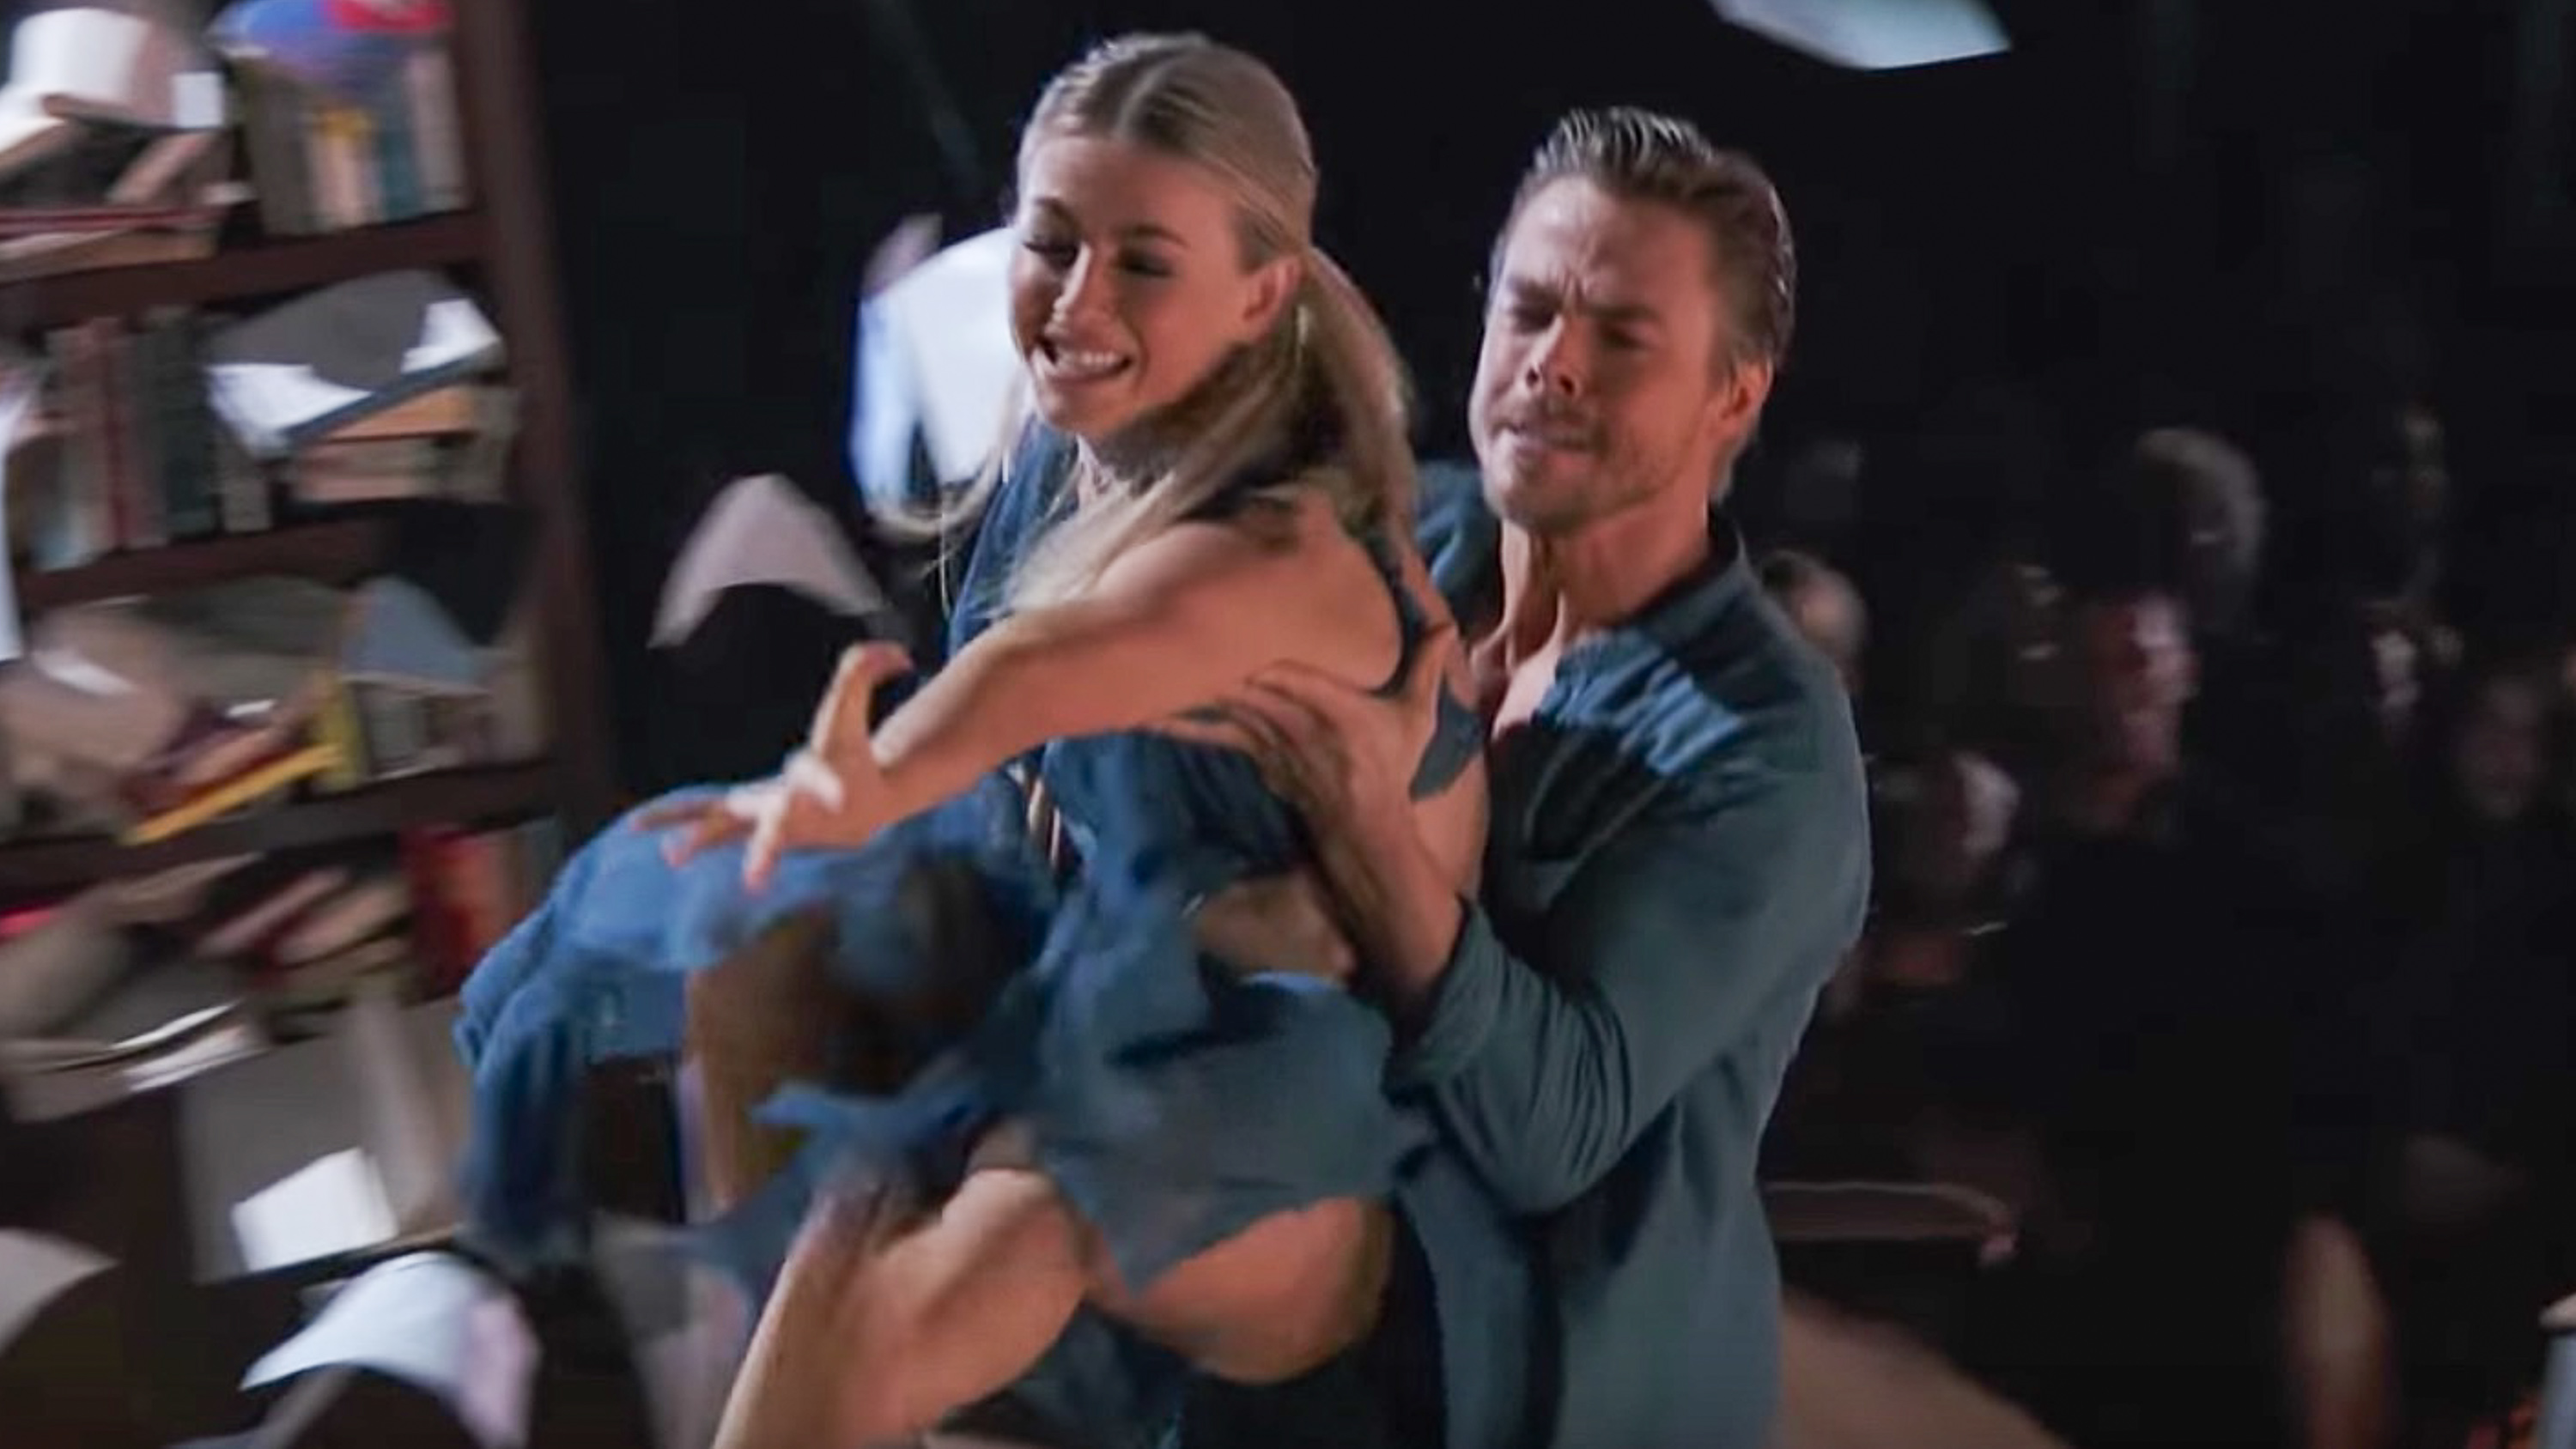 WATCH: Derek, Julianne Hough perform emotional dance on ...